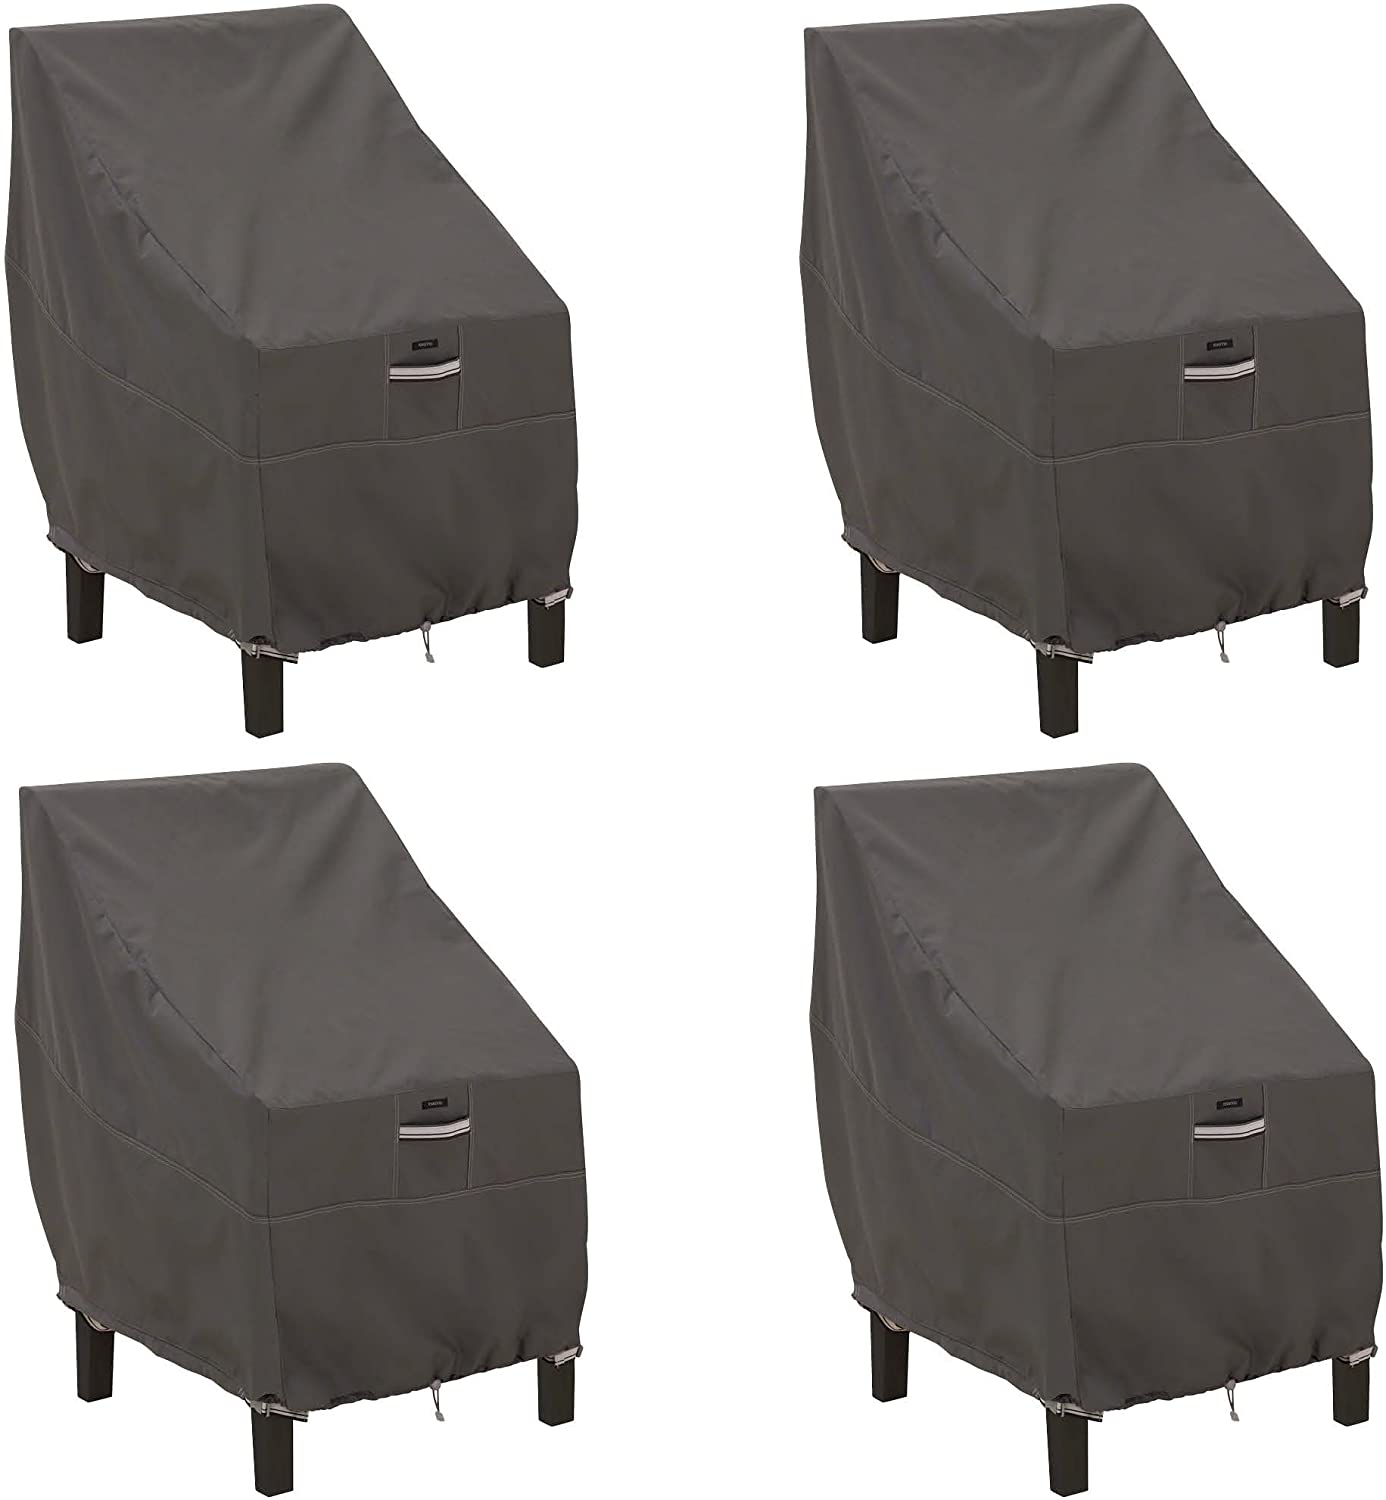 Classic Accessories Ravenna High Back Dining Patio Chair Cover (4-Pack)